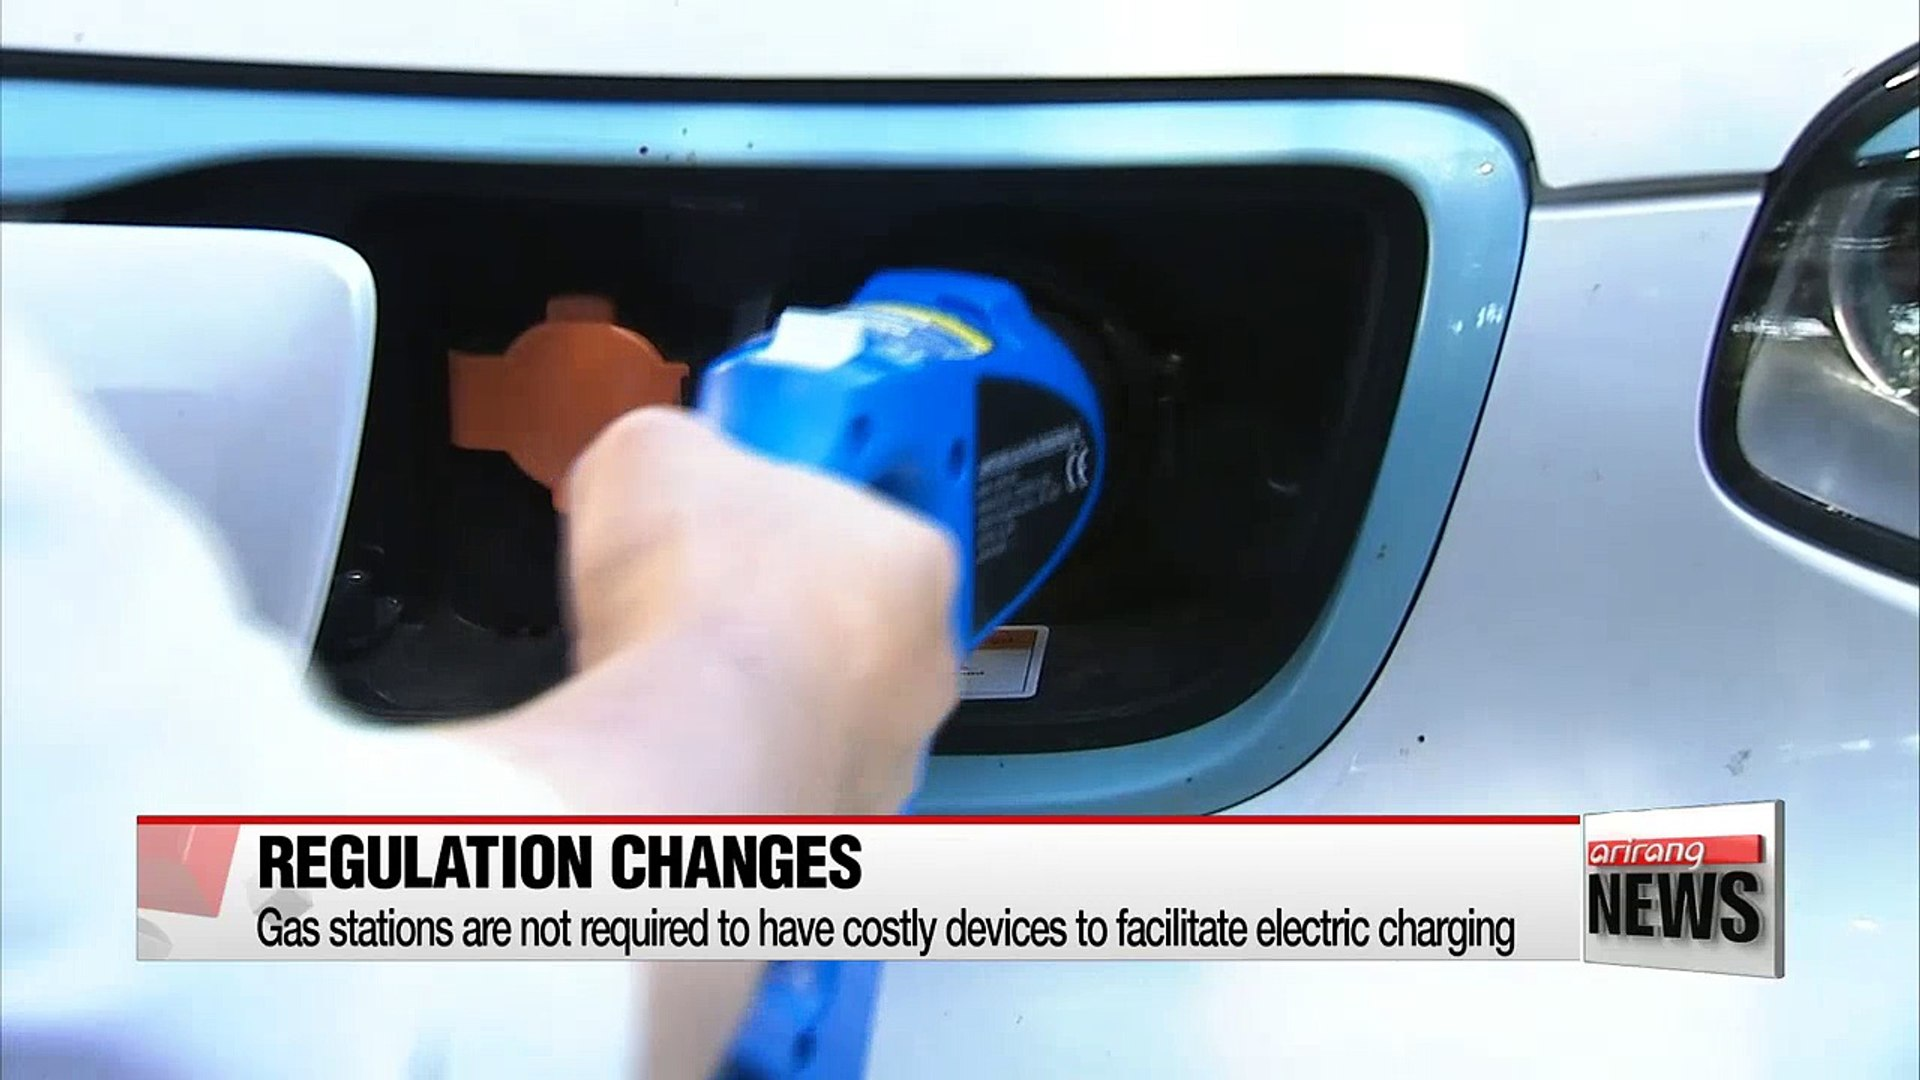 Fewer regulations for installing charging stations at gas stations